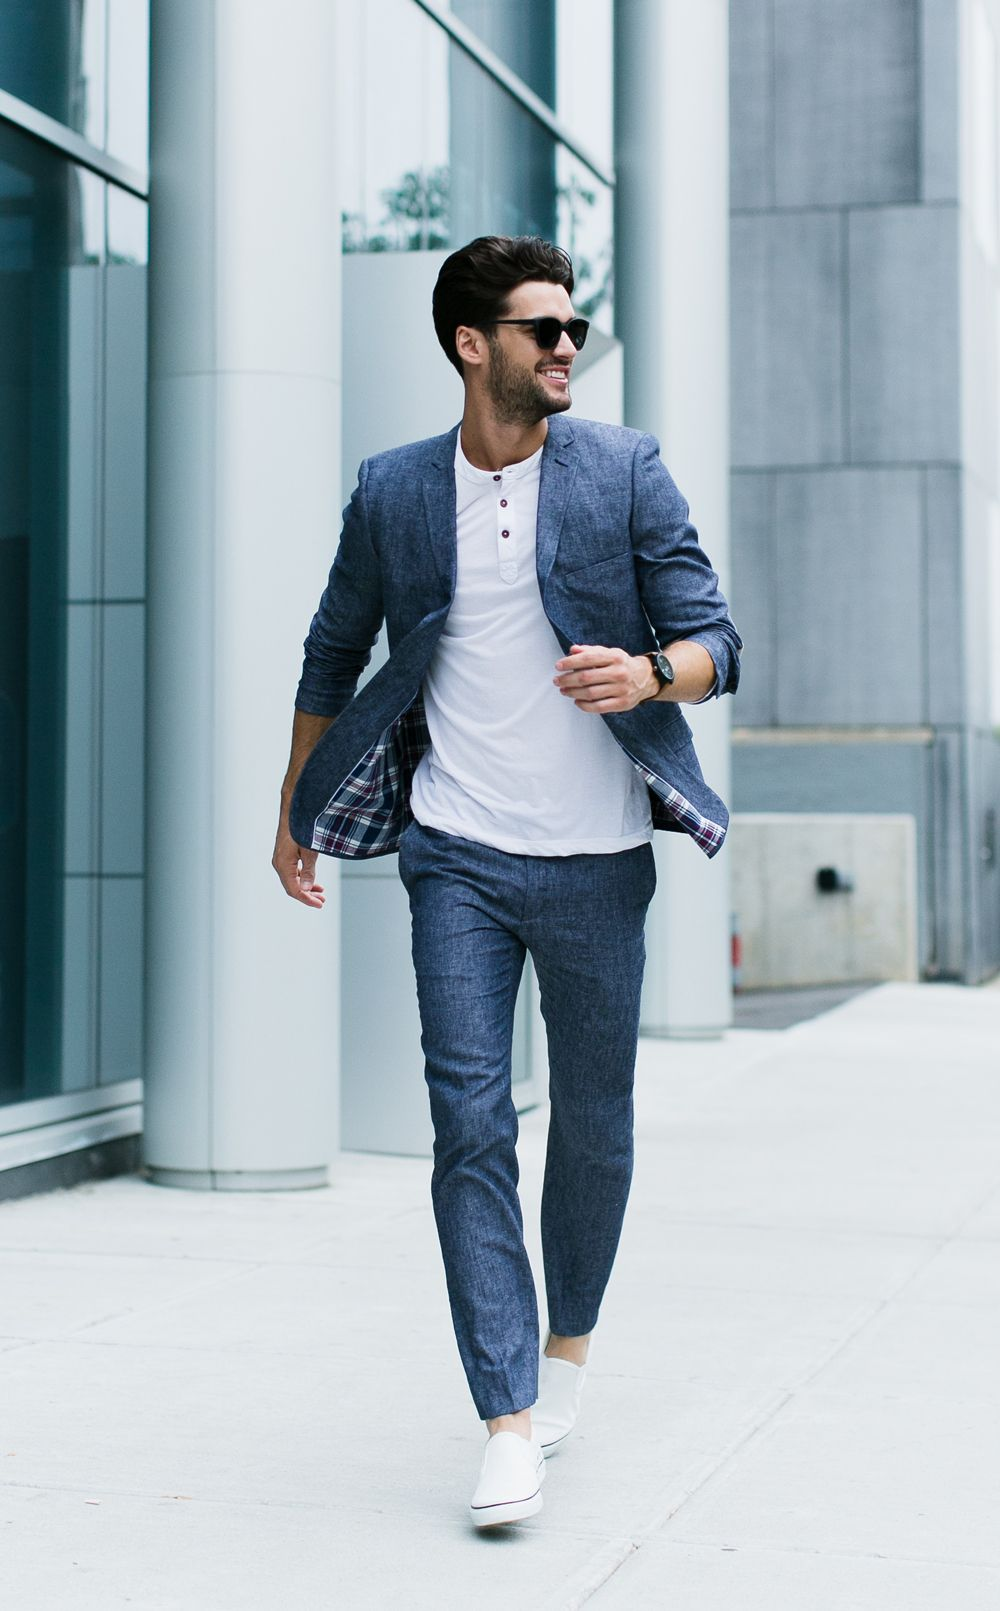 Looking for a summer suit? Go linen. | Men\'s Apparel | Pinterest ...